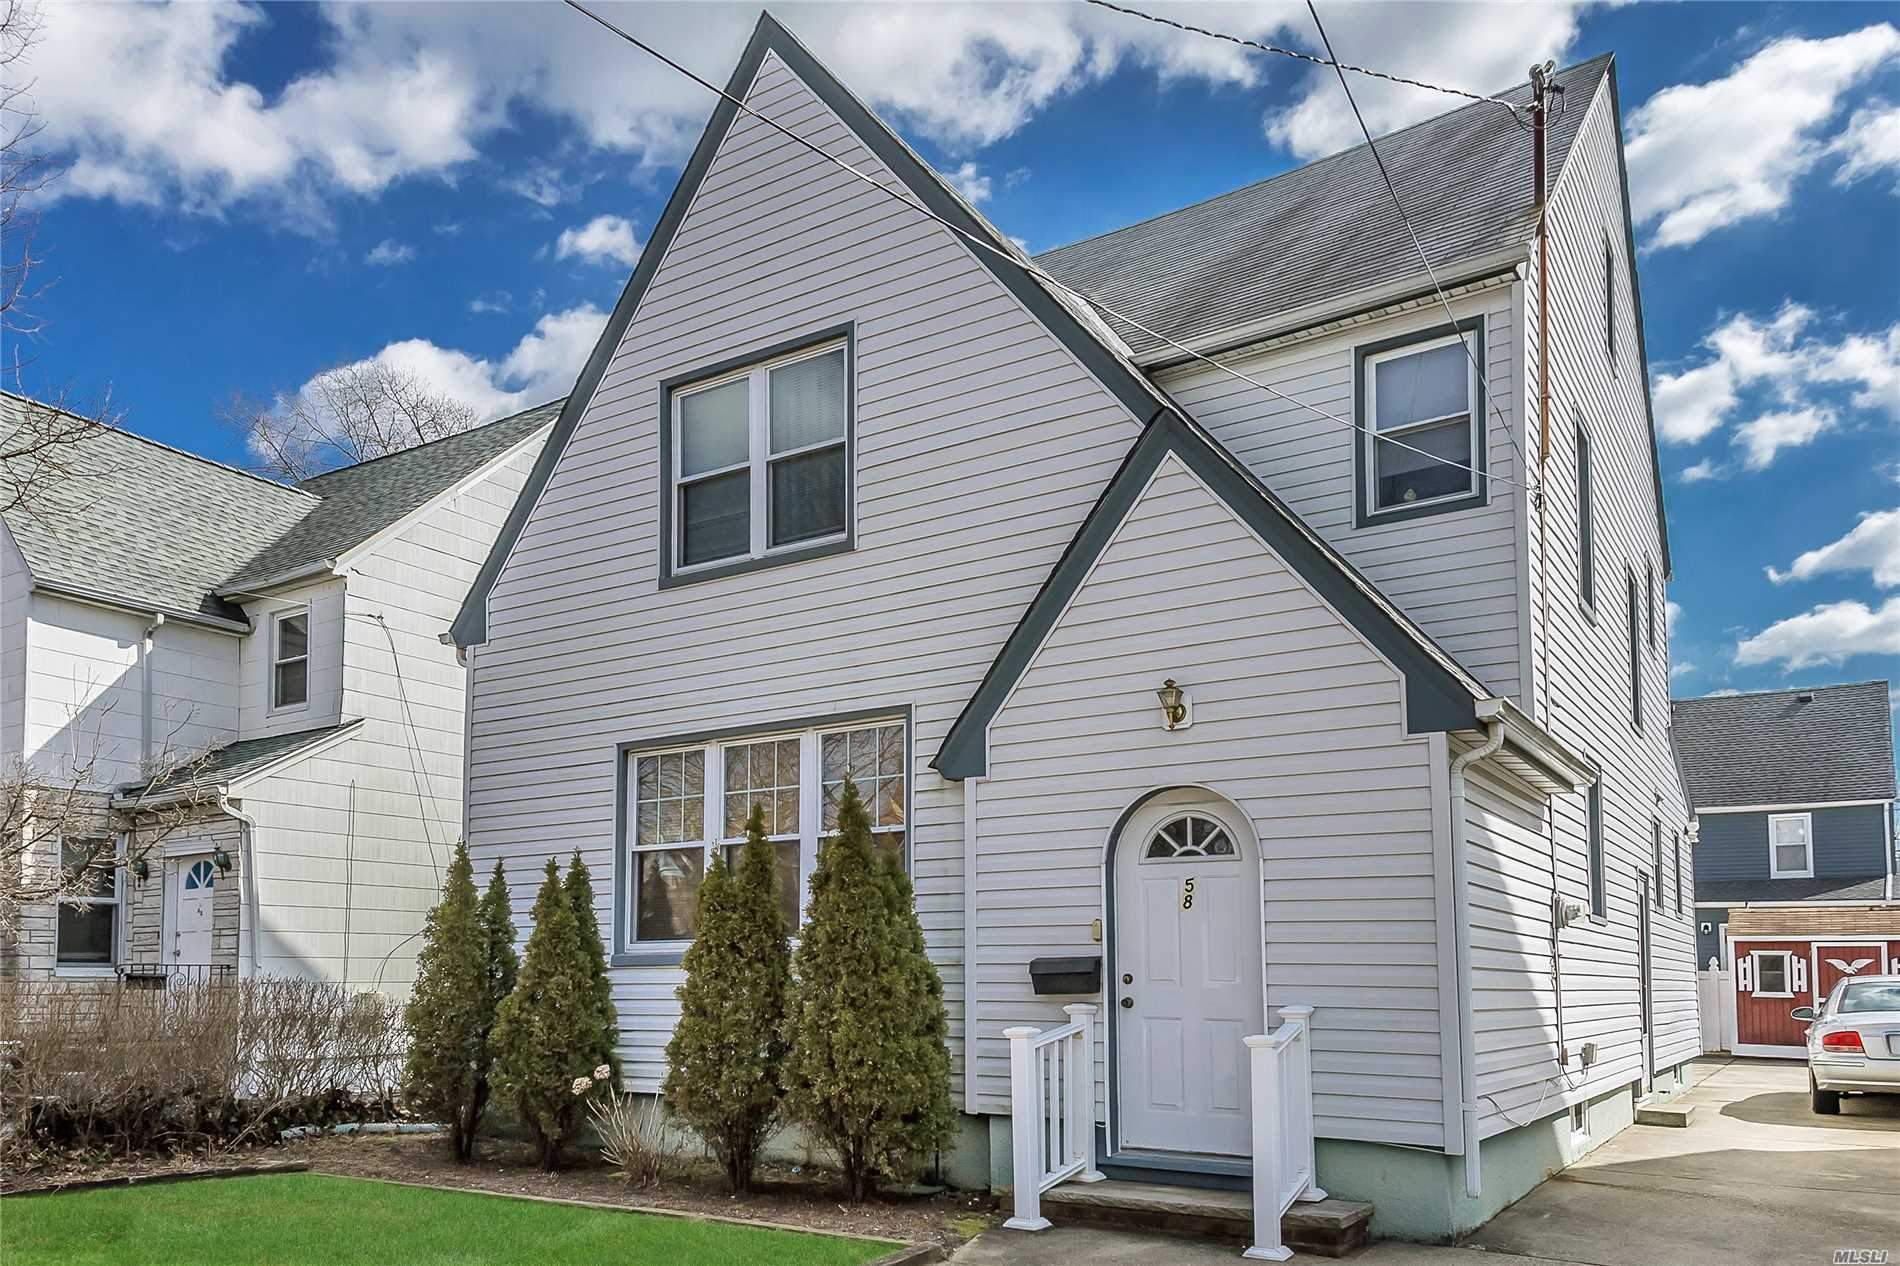 Valley Stream, Gibson Colonial, 4 Bedrooms, Living Room, Formal Dining Room, Eik, 2 Full Bathrooms, Walk Up Attic, Full Basement With Ose. Private Yard With Deck. Convenient Location To Shopping,  Highways, Public Transportation, 30 Minutes Into Manhattan